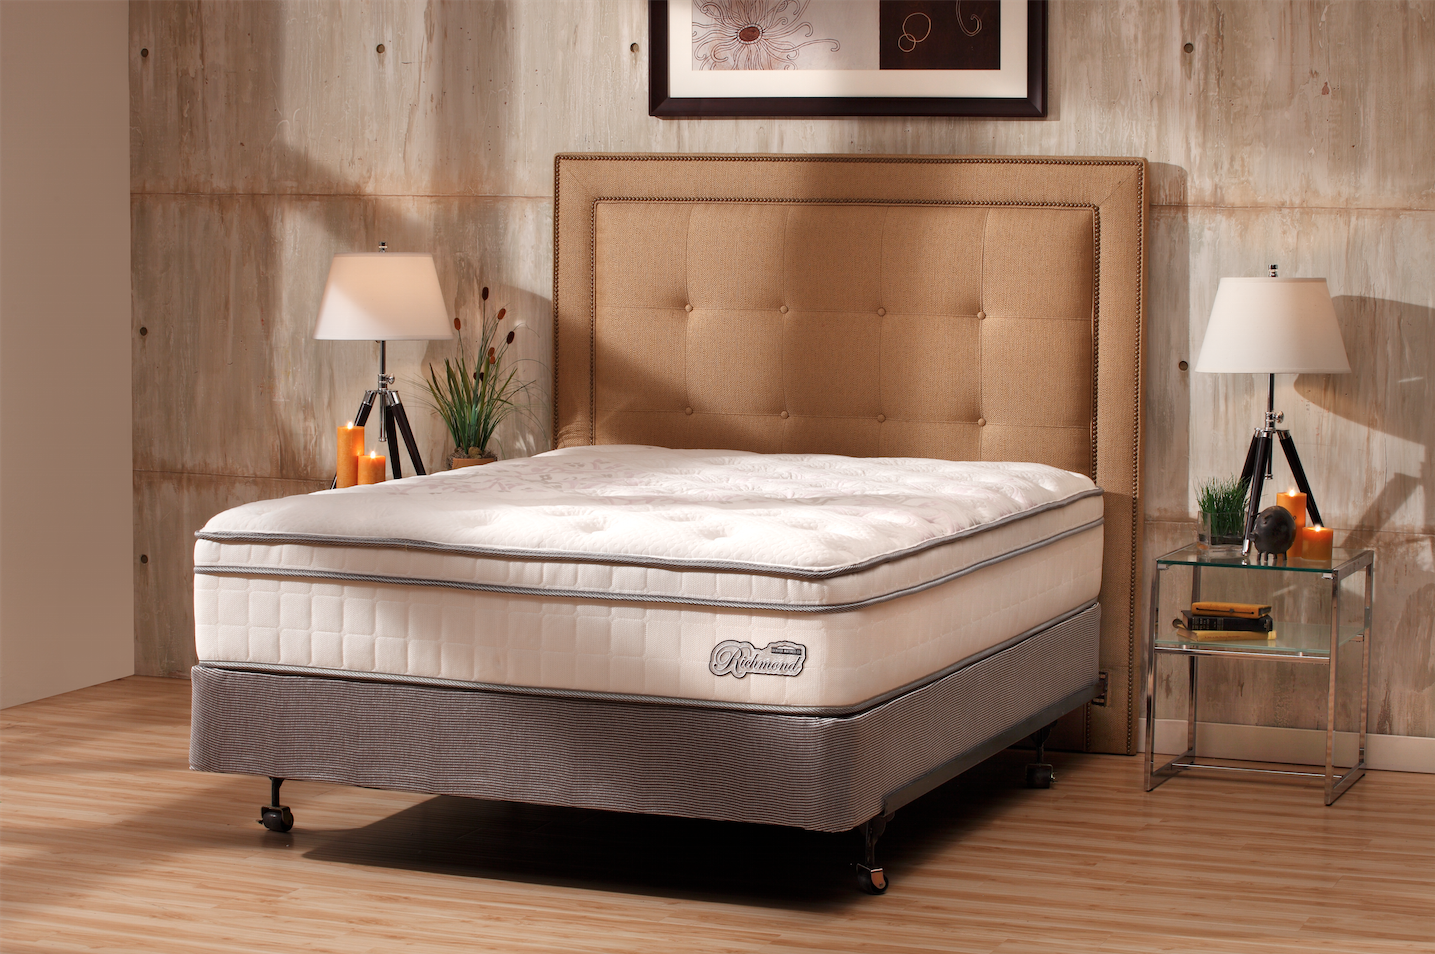 Denver Mattress Company image 9